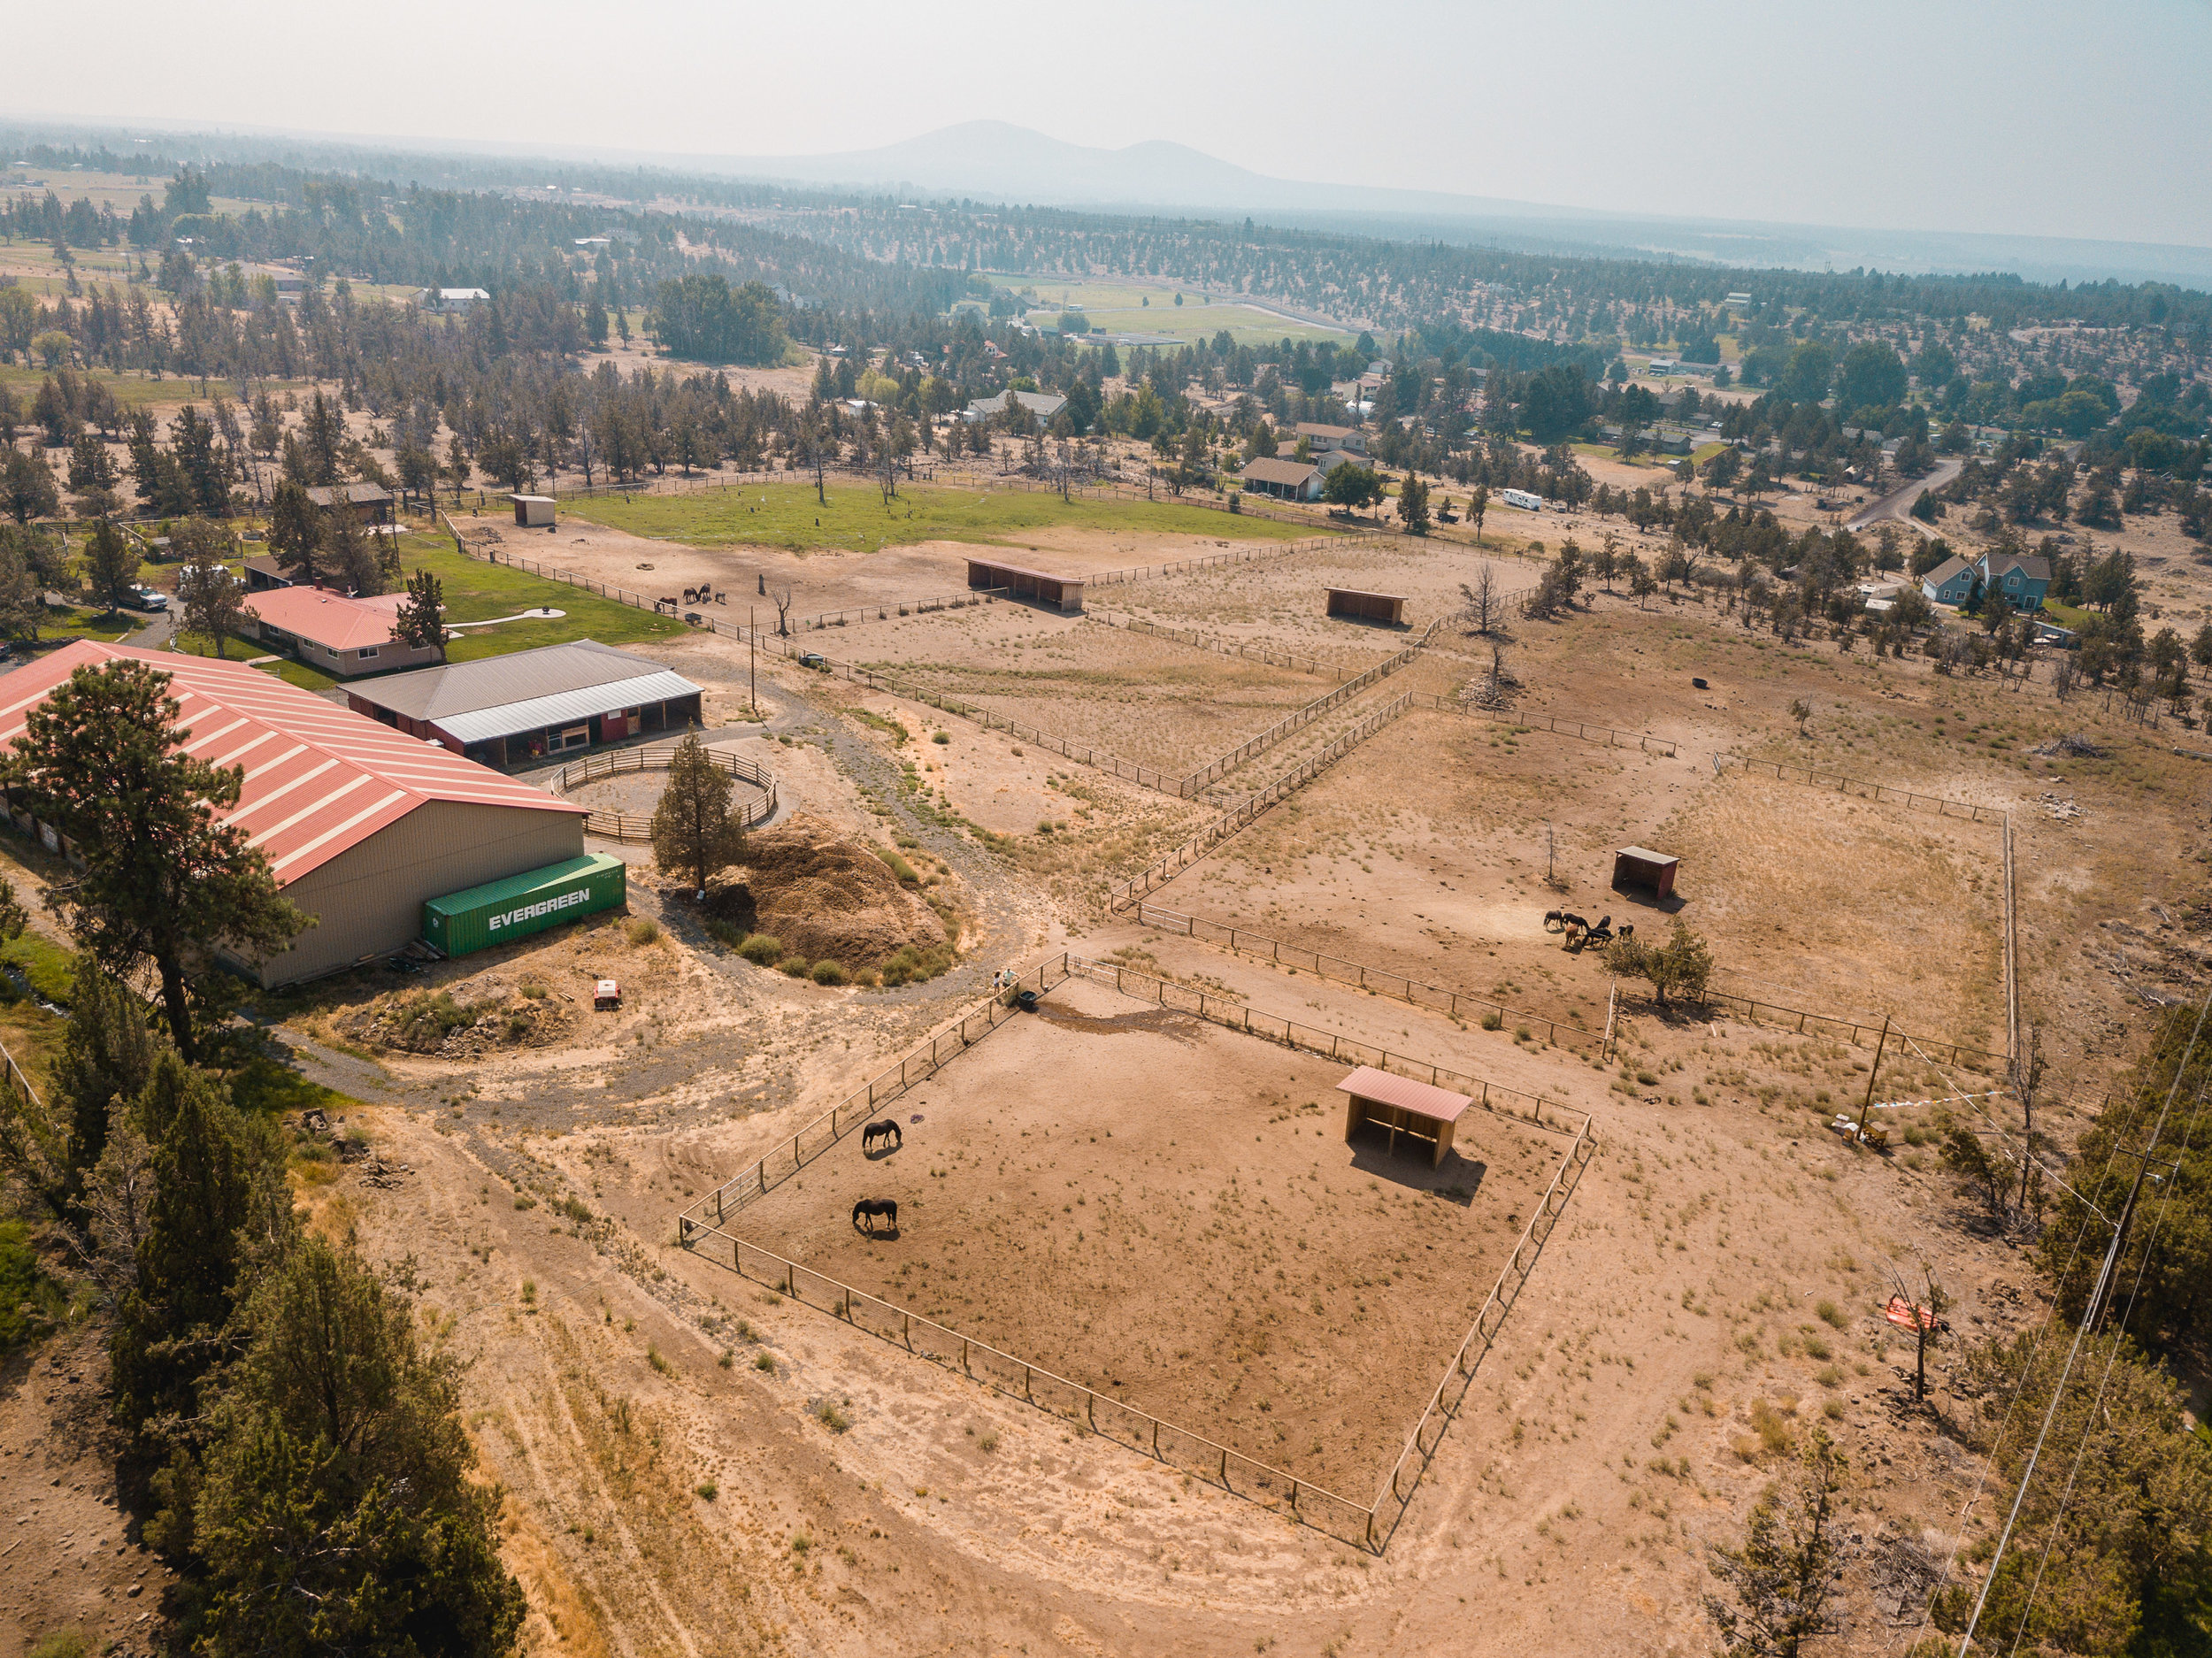 Twenty acres of sanctuary in rural, central Oregon where the horses are loved and cared for.